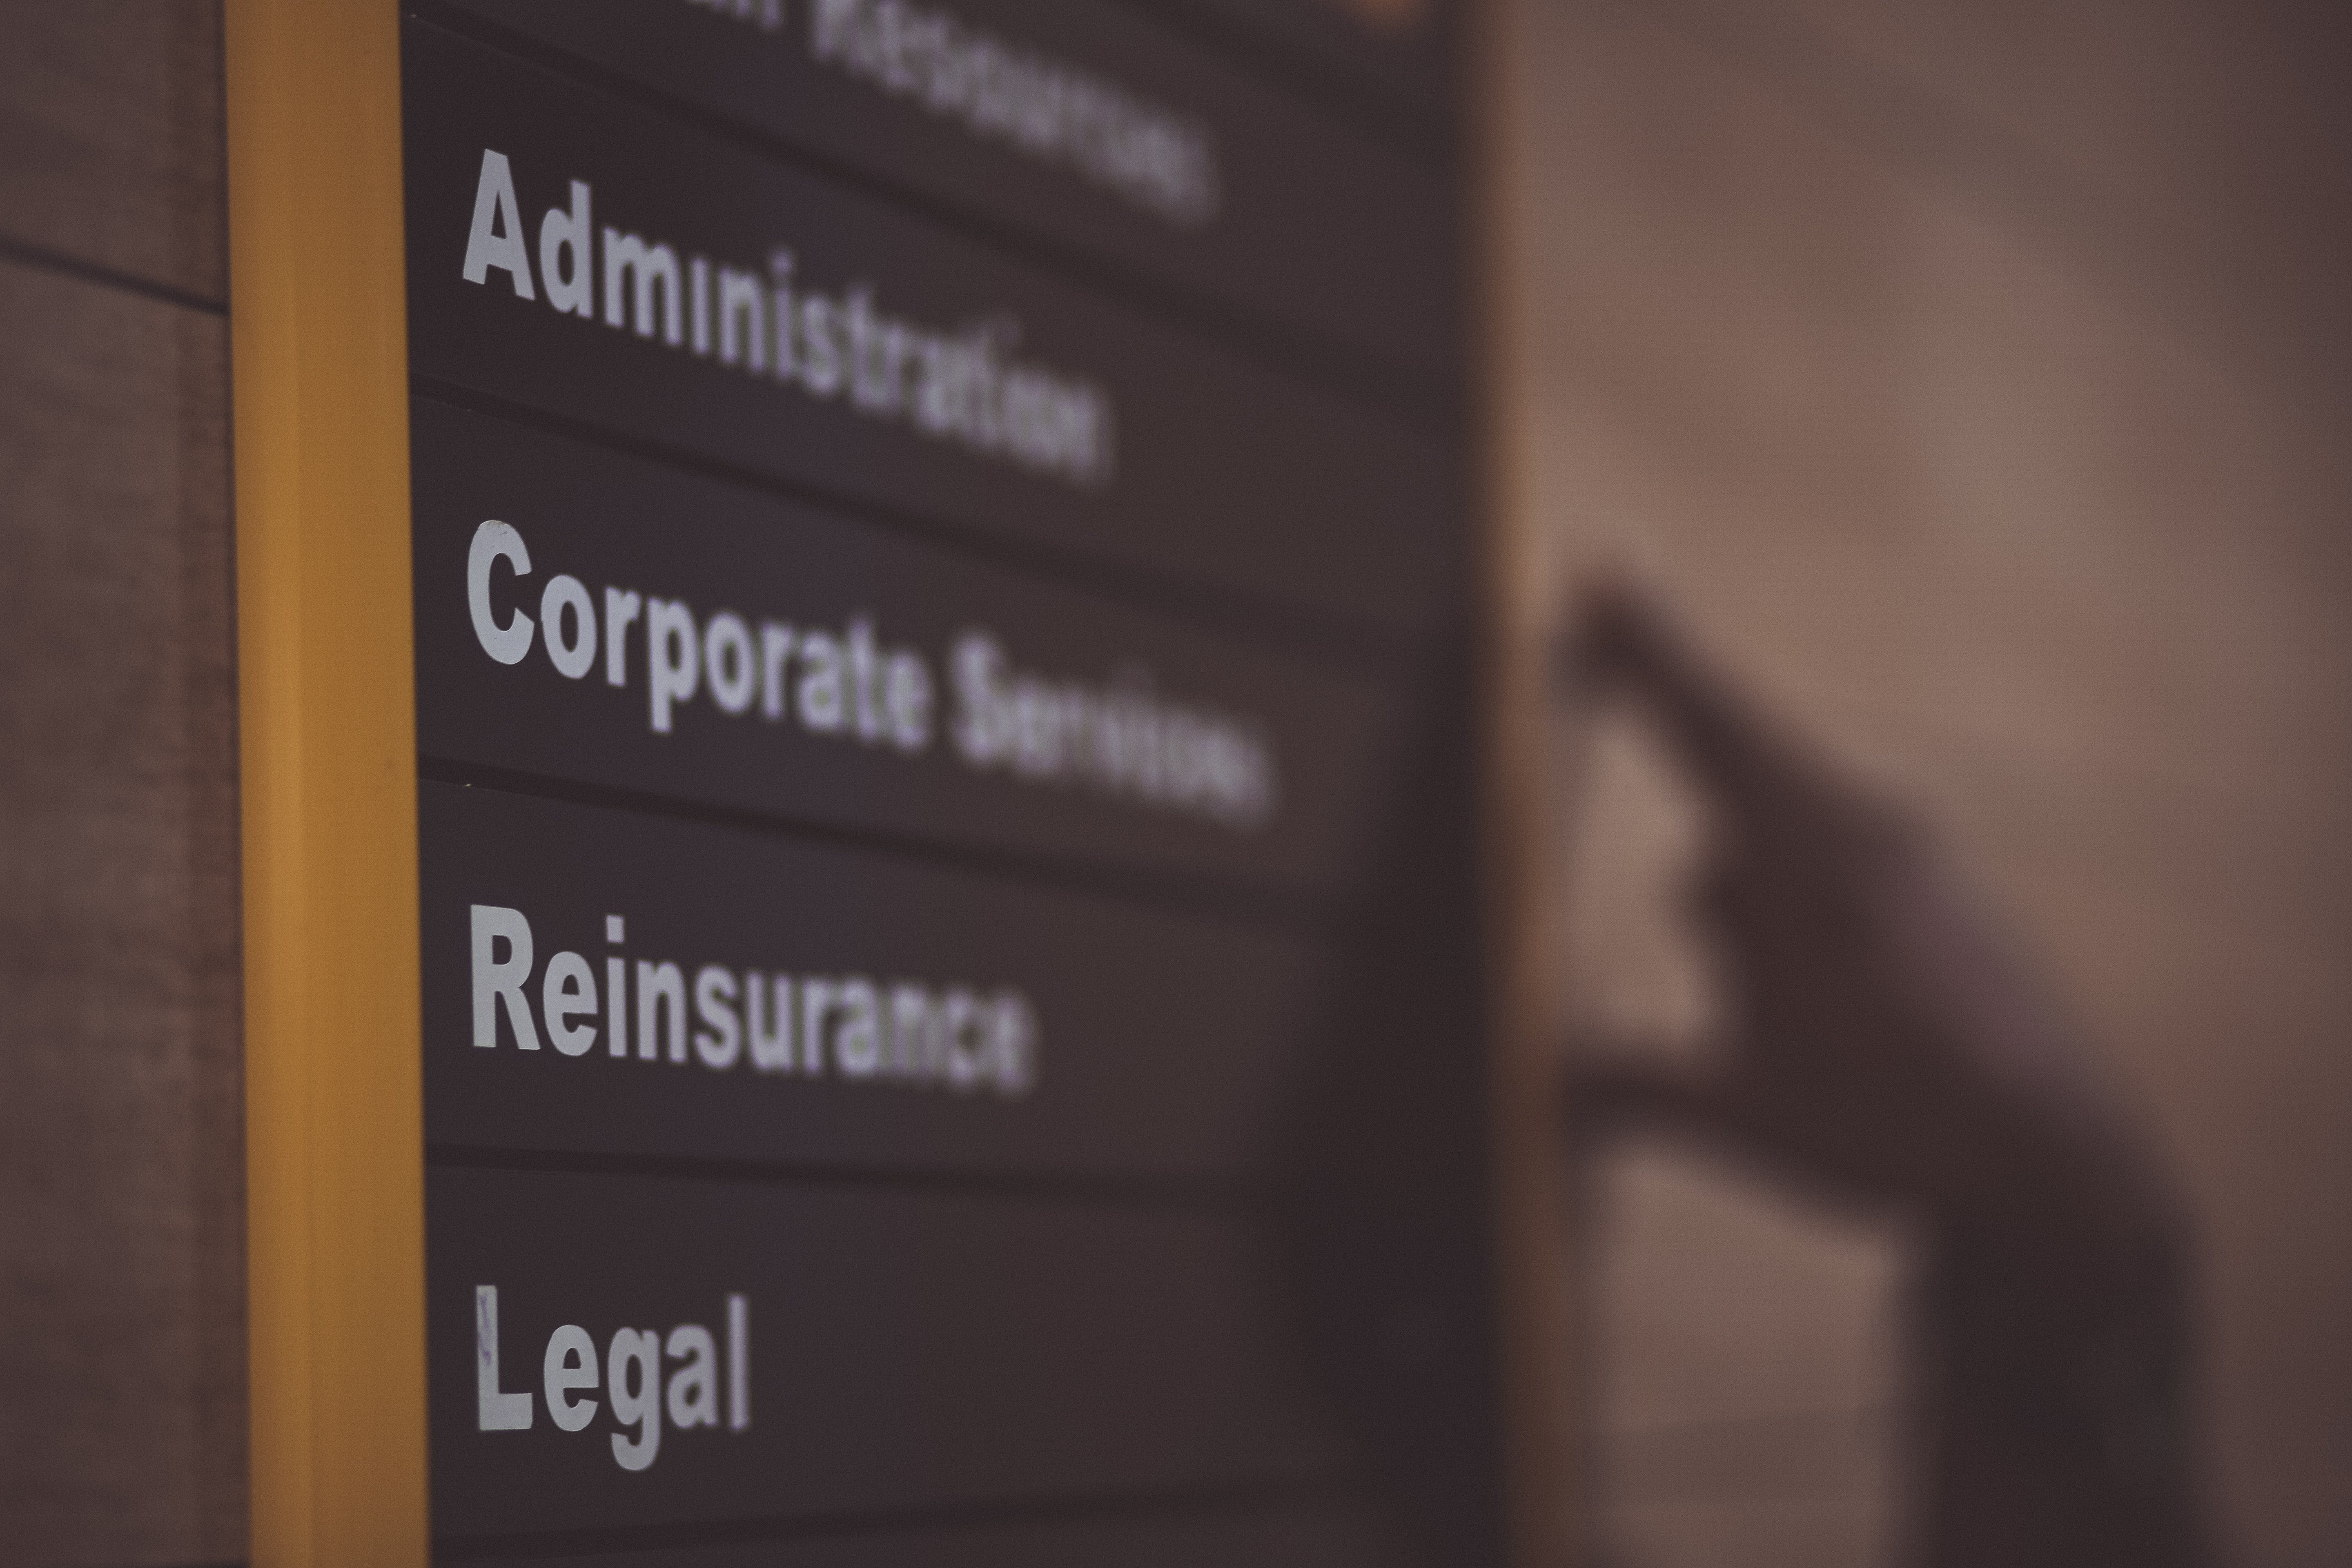 Administration Corporate Services Reinsurance Legal ...